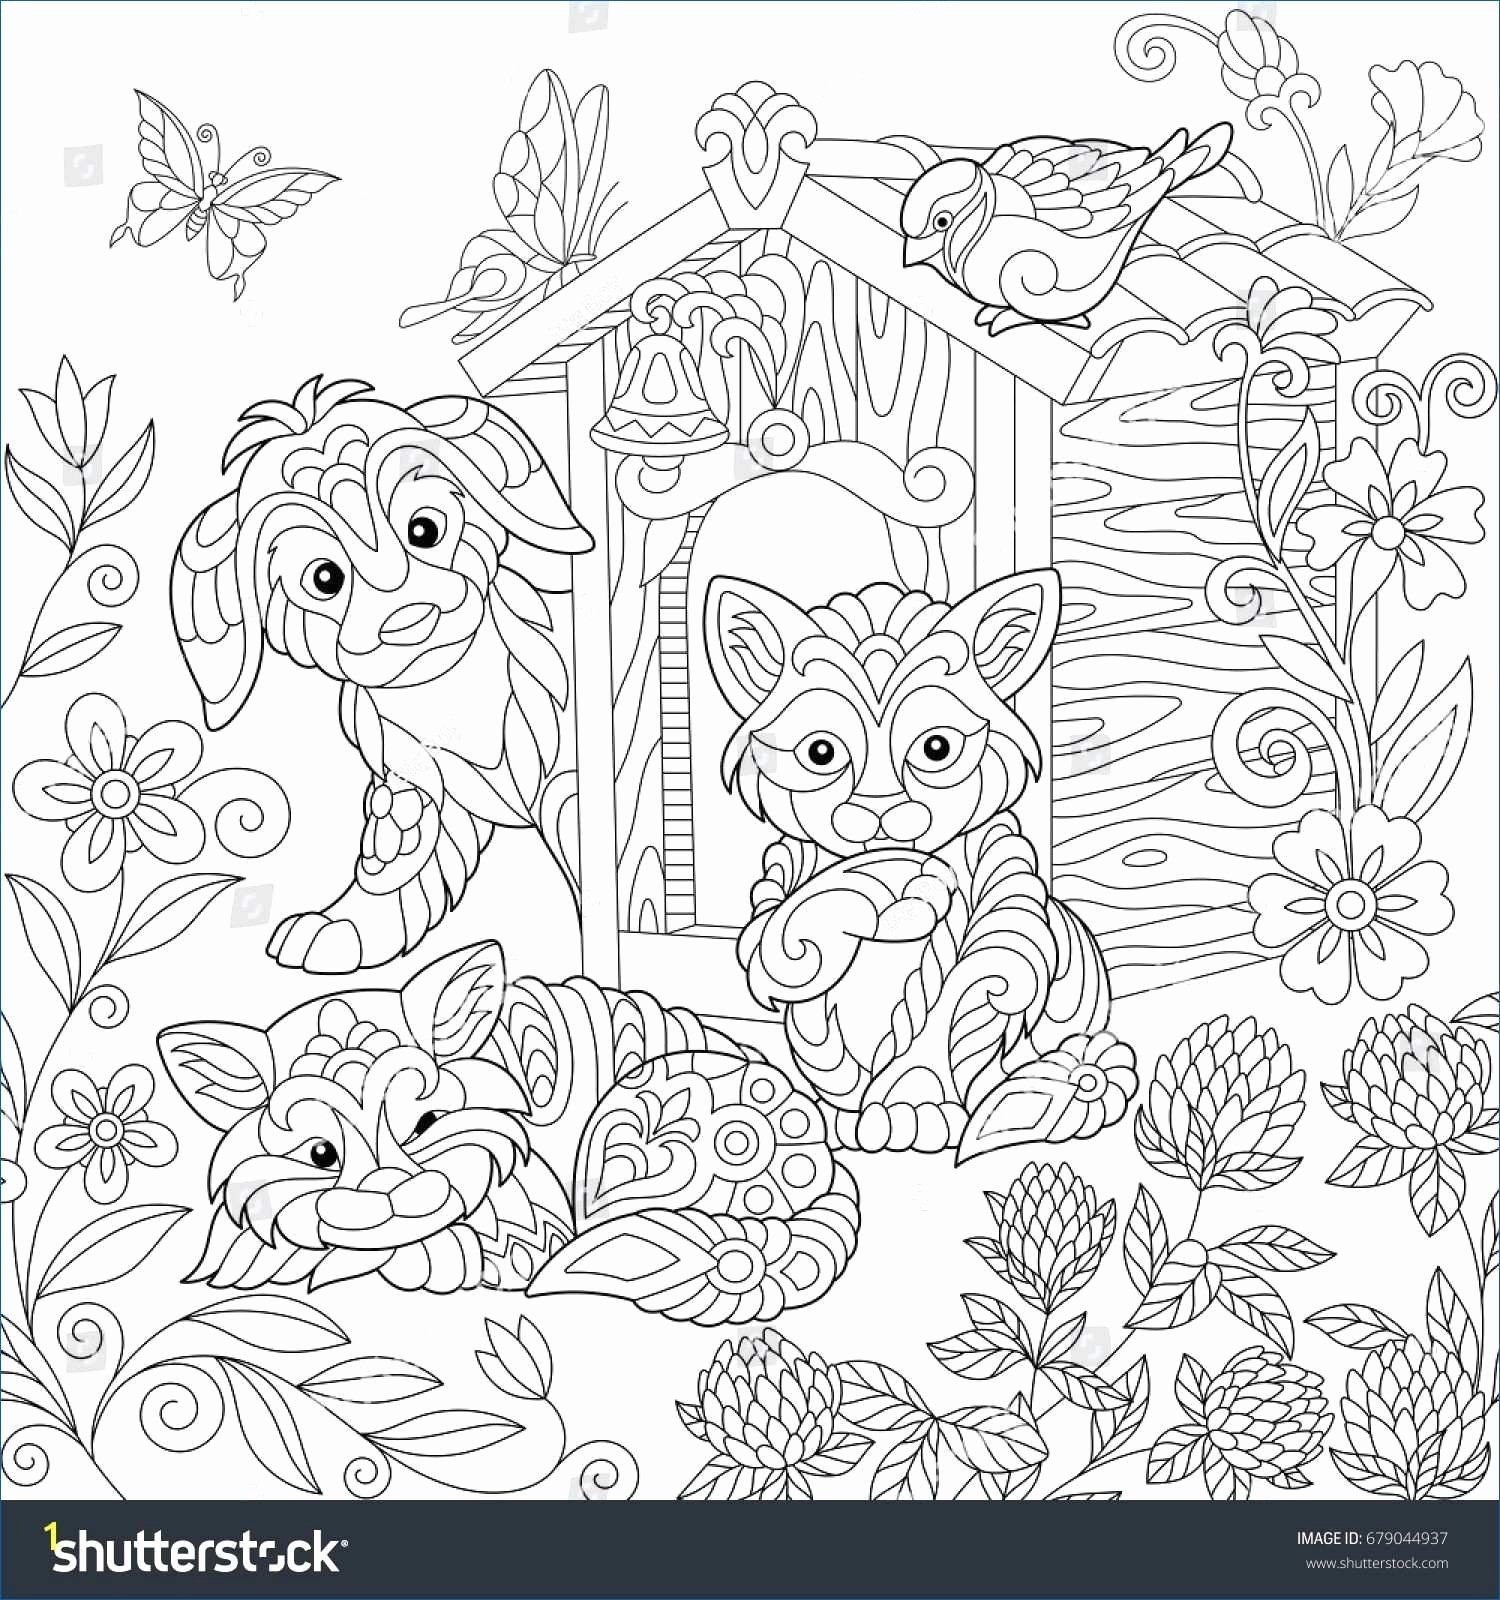 Coloring Book Little Space Fresh Basic Anatomy Coloring Pages